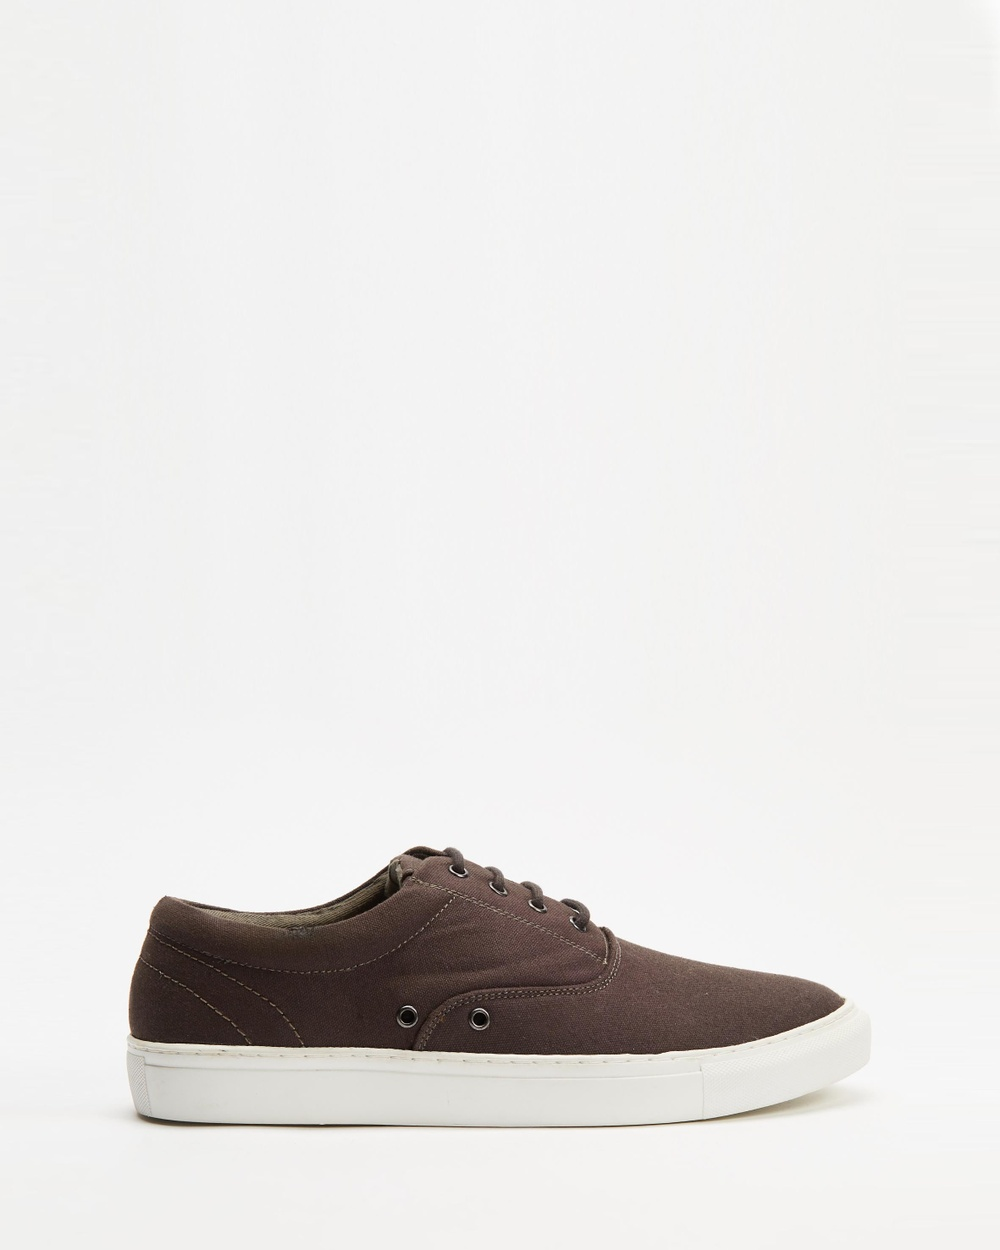 AERE Organic Canvas Deck Shoes Sneakers Charcoal